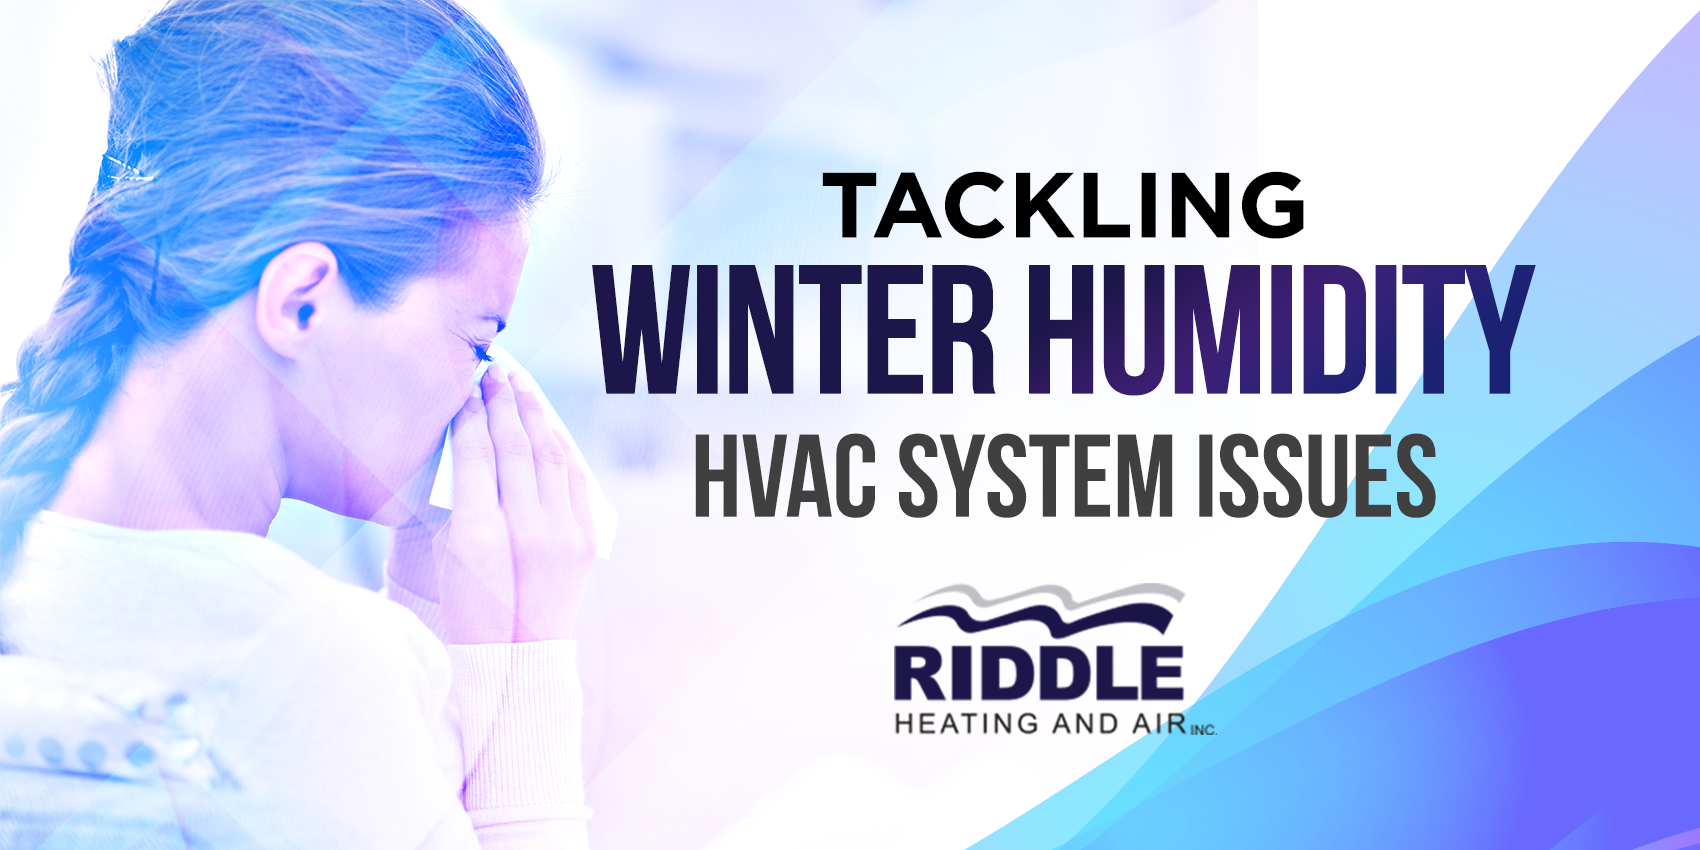 Tackling Winter Humidity HVAC System Issues